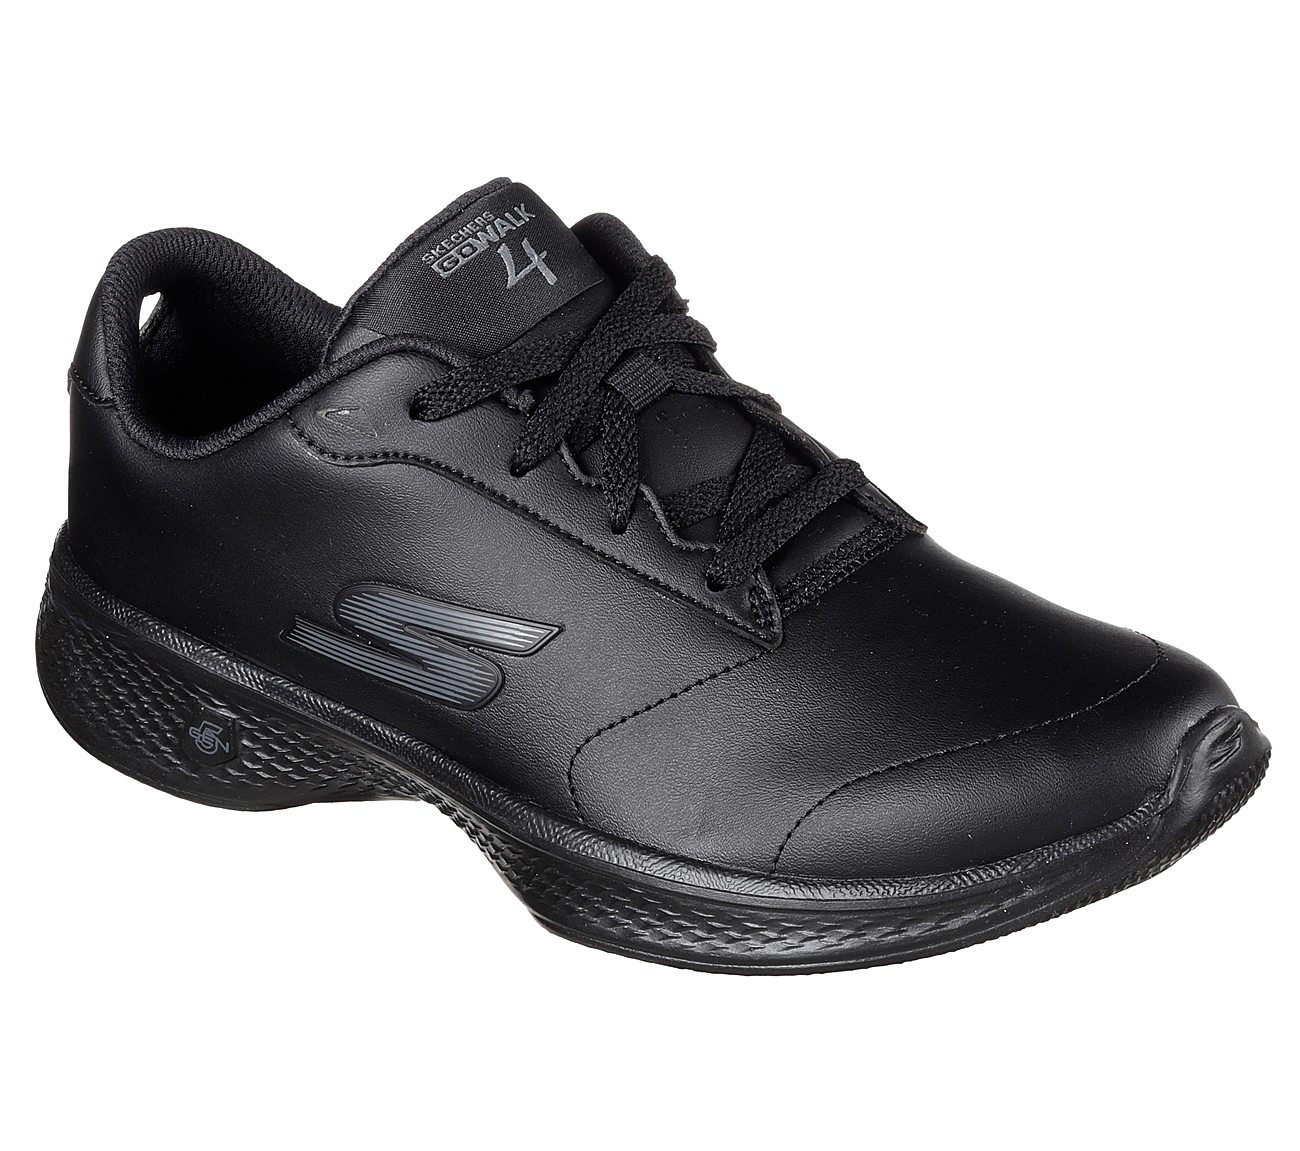 Skechers GOwalk 4 - Clarity